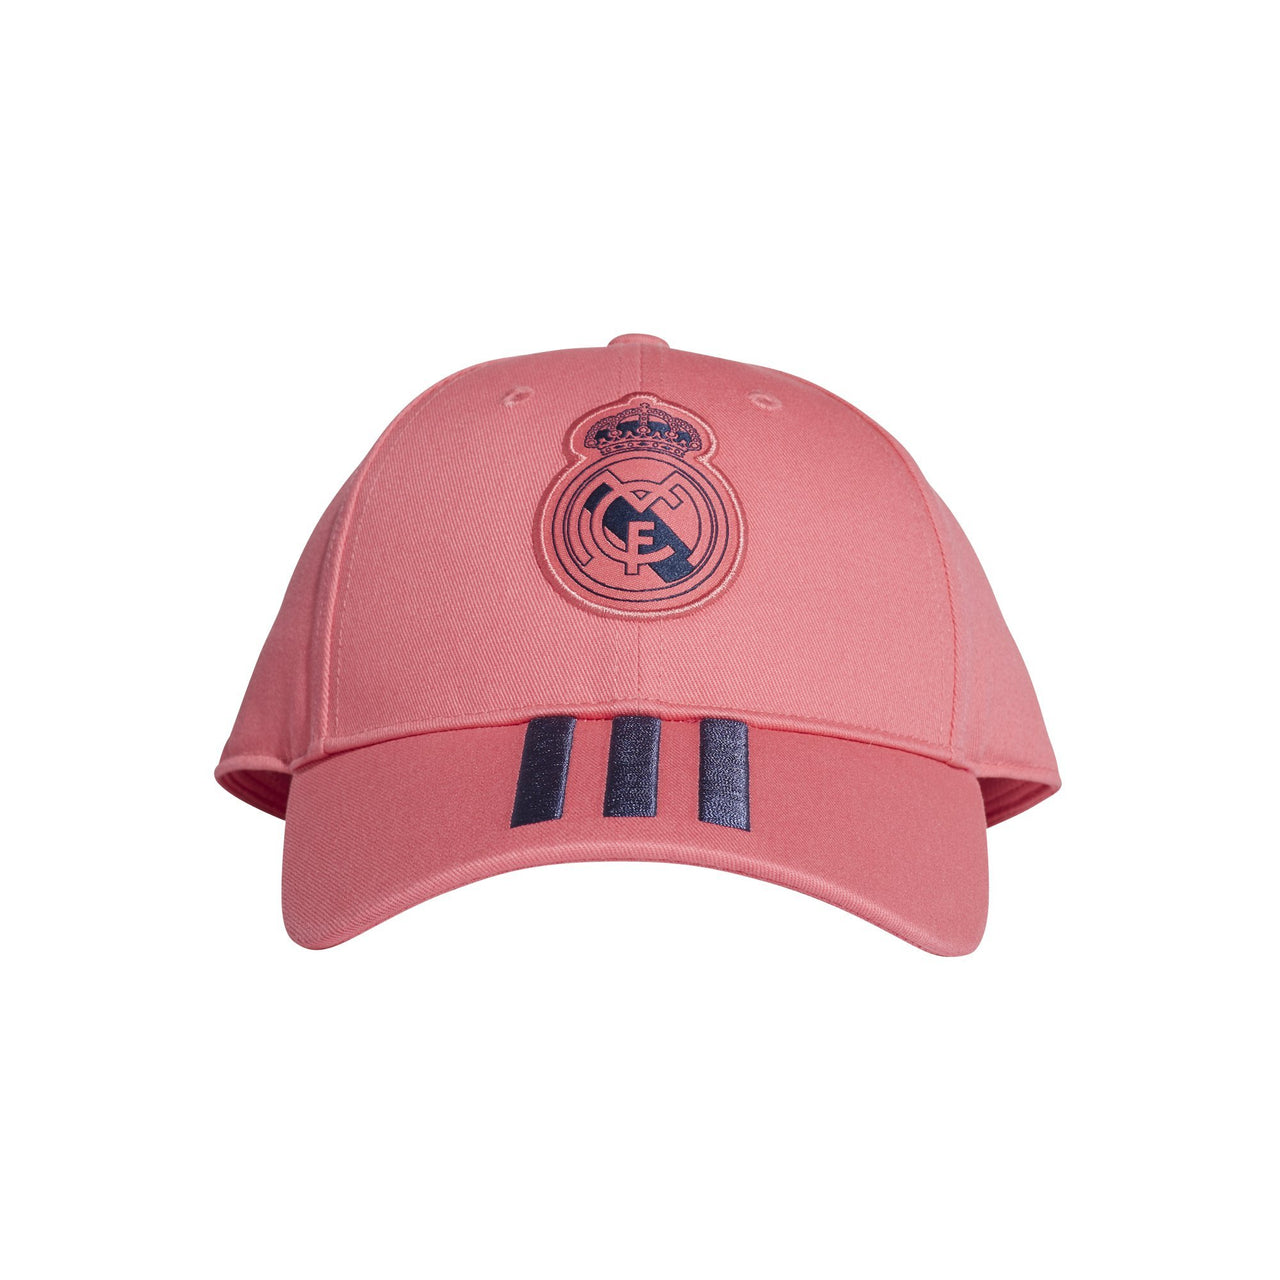 Loza de barro equipo Imperialismo  Caps and Hats Mens - Real Madrid CF | EU Shop